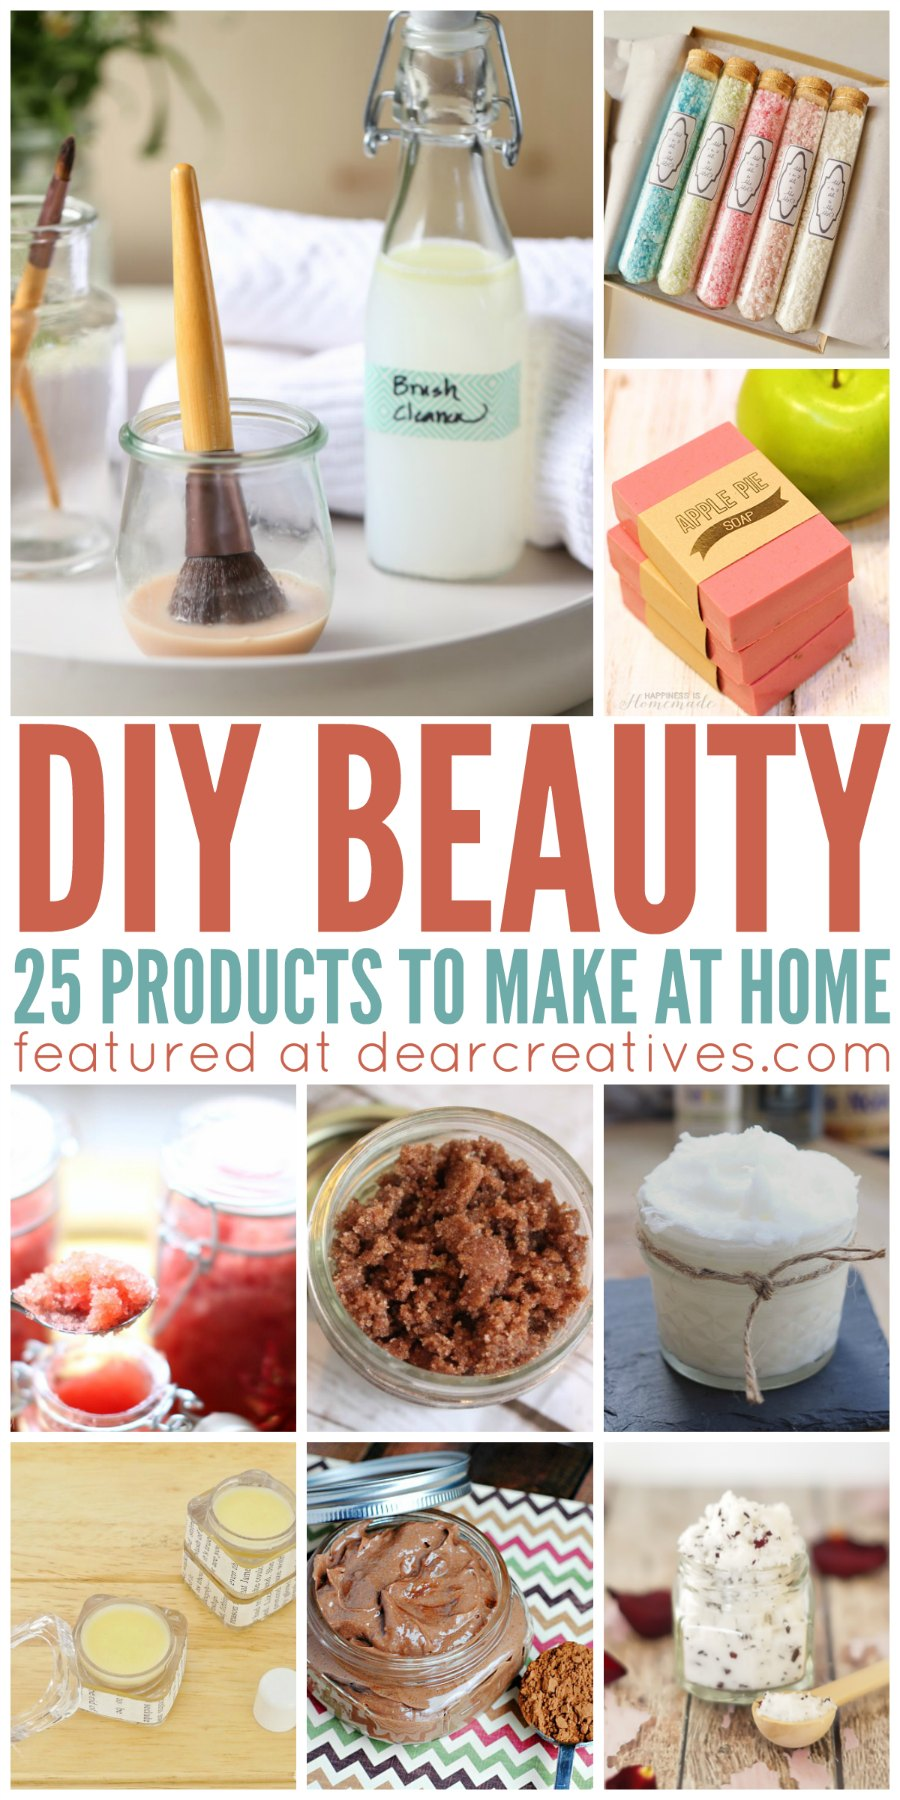 DIY Beauty: 25 Must Try Homemade DIY Beauty Products